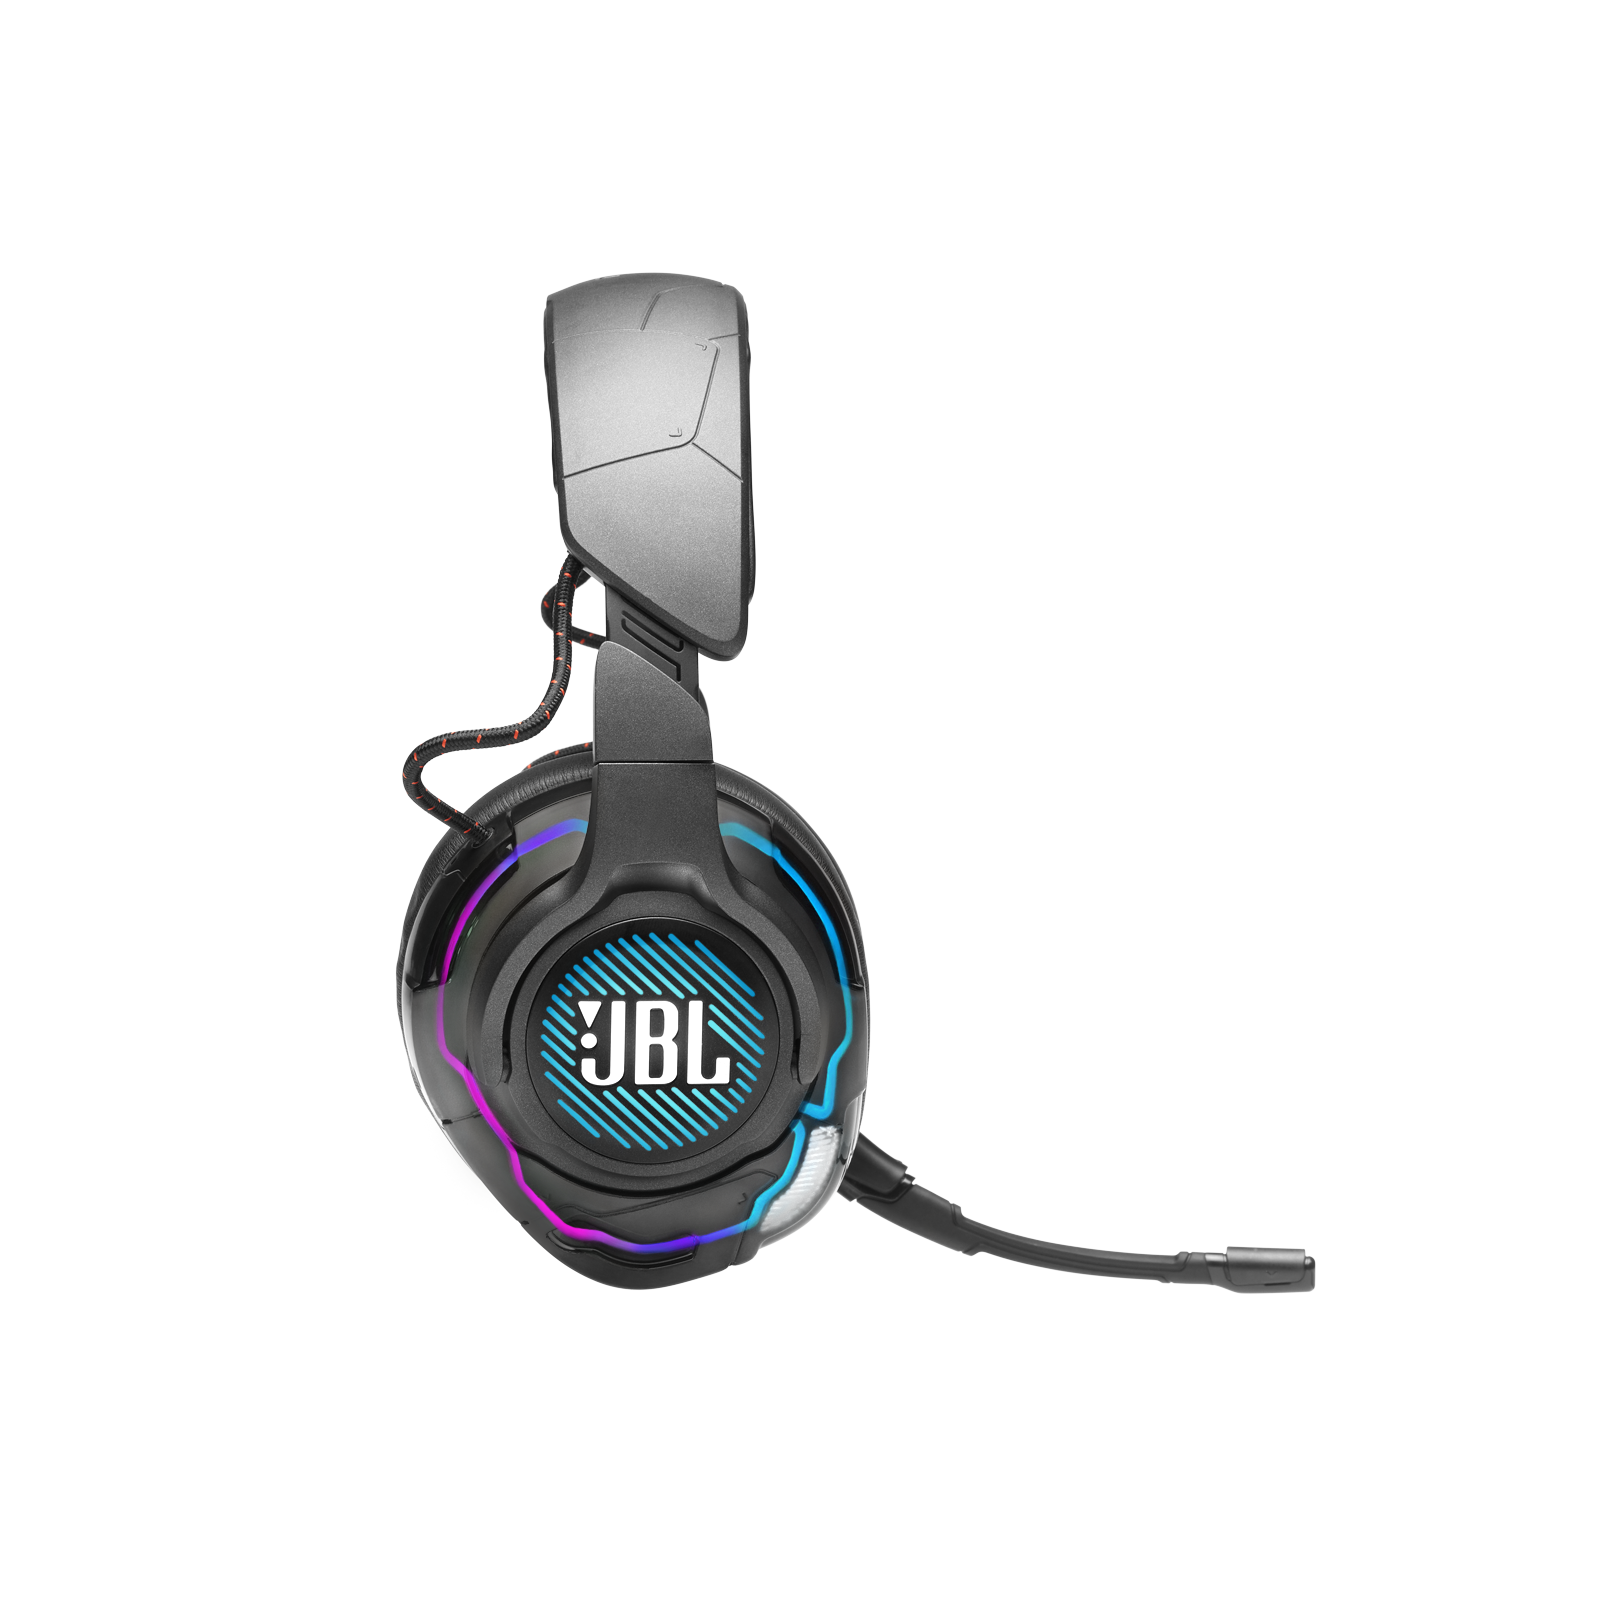 JBL Quantum ONE - Black - USB wired PC over-ear professional gaming headset with head-tracking enhanced JBL QuantumSPHERE 360 - Detailshot 5